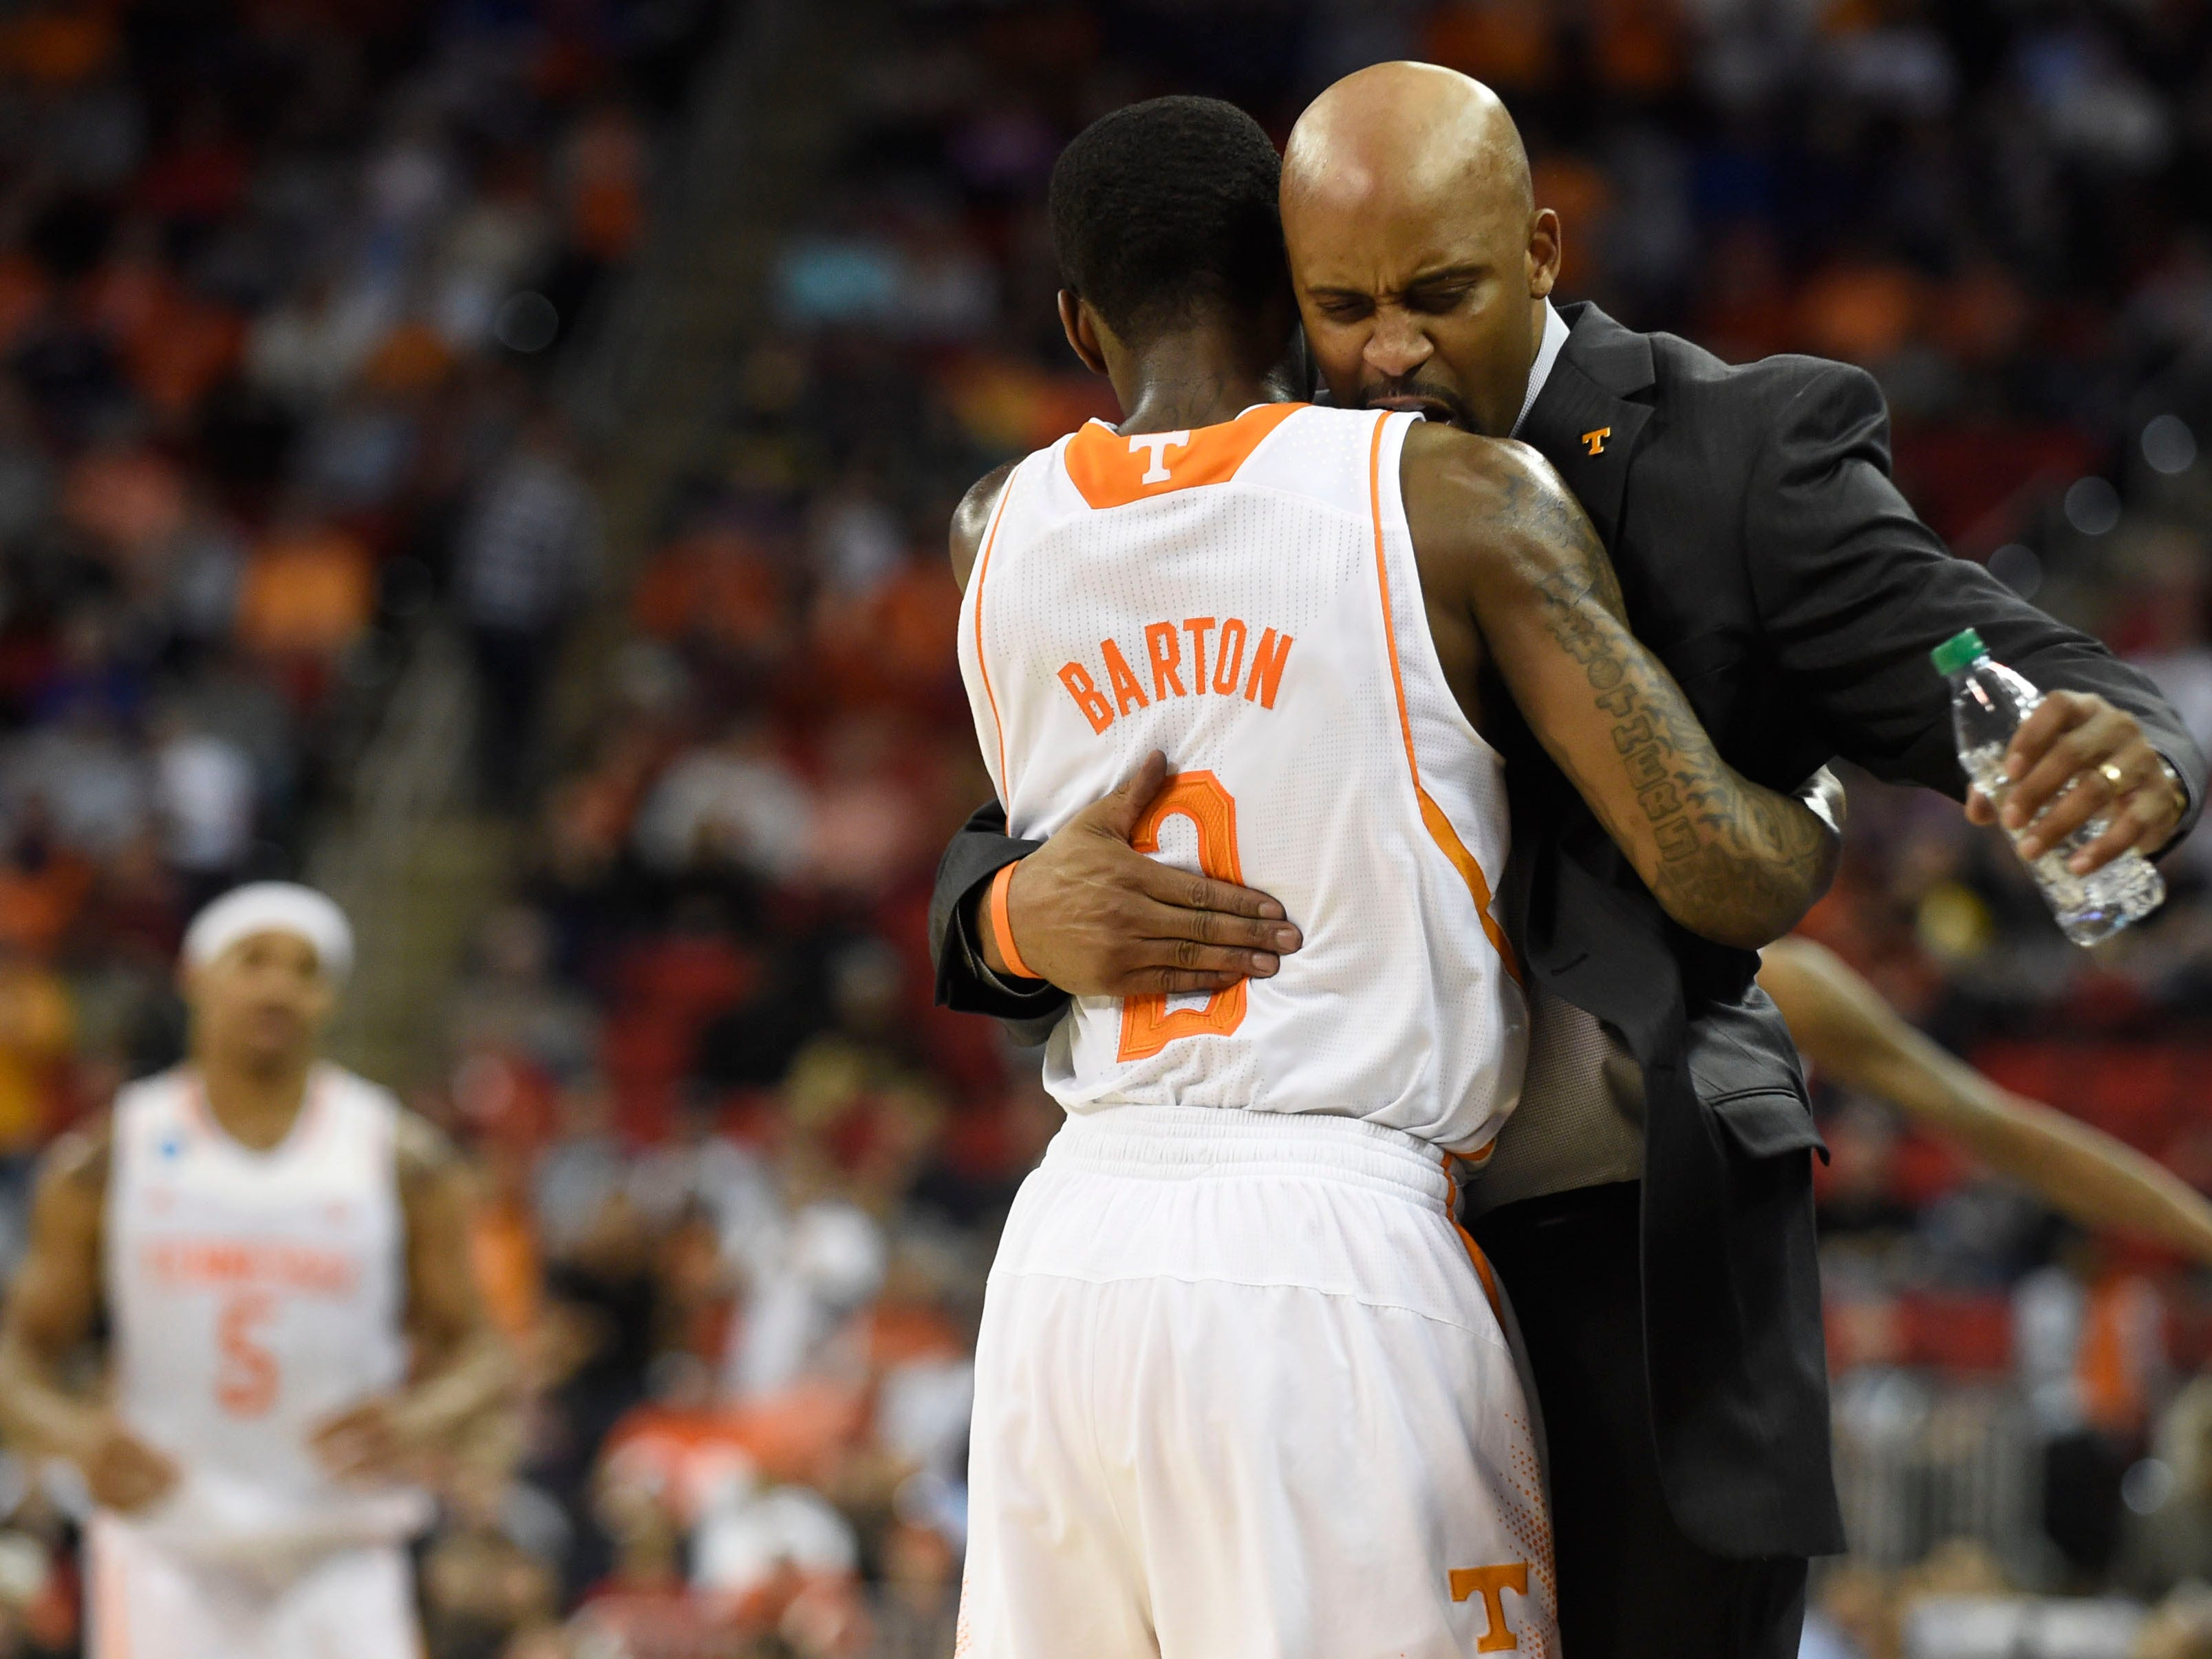 Tennessee guard Antonio Barton (2) hugs Tennessee head coach Cuonzo Martin after Tennessee secured a Sweet Sixteen berth by defeating Mercer 83-63 in a third-round NCAA tournament game at the PNC Arena in Raleigh, N.C. on Sunday, March 23, 2014.